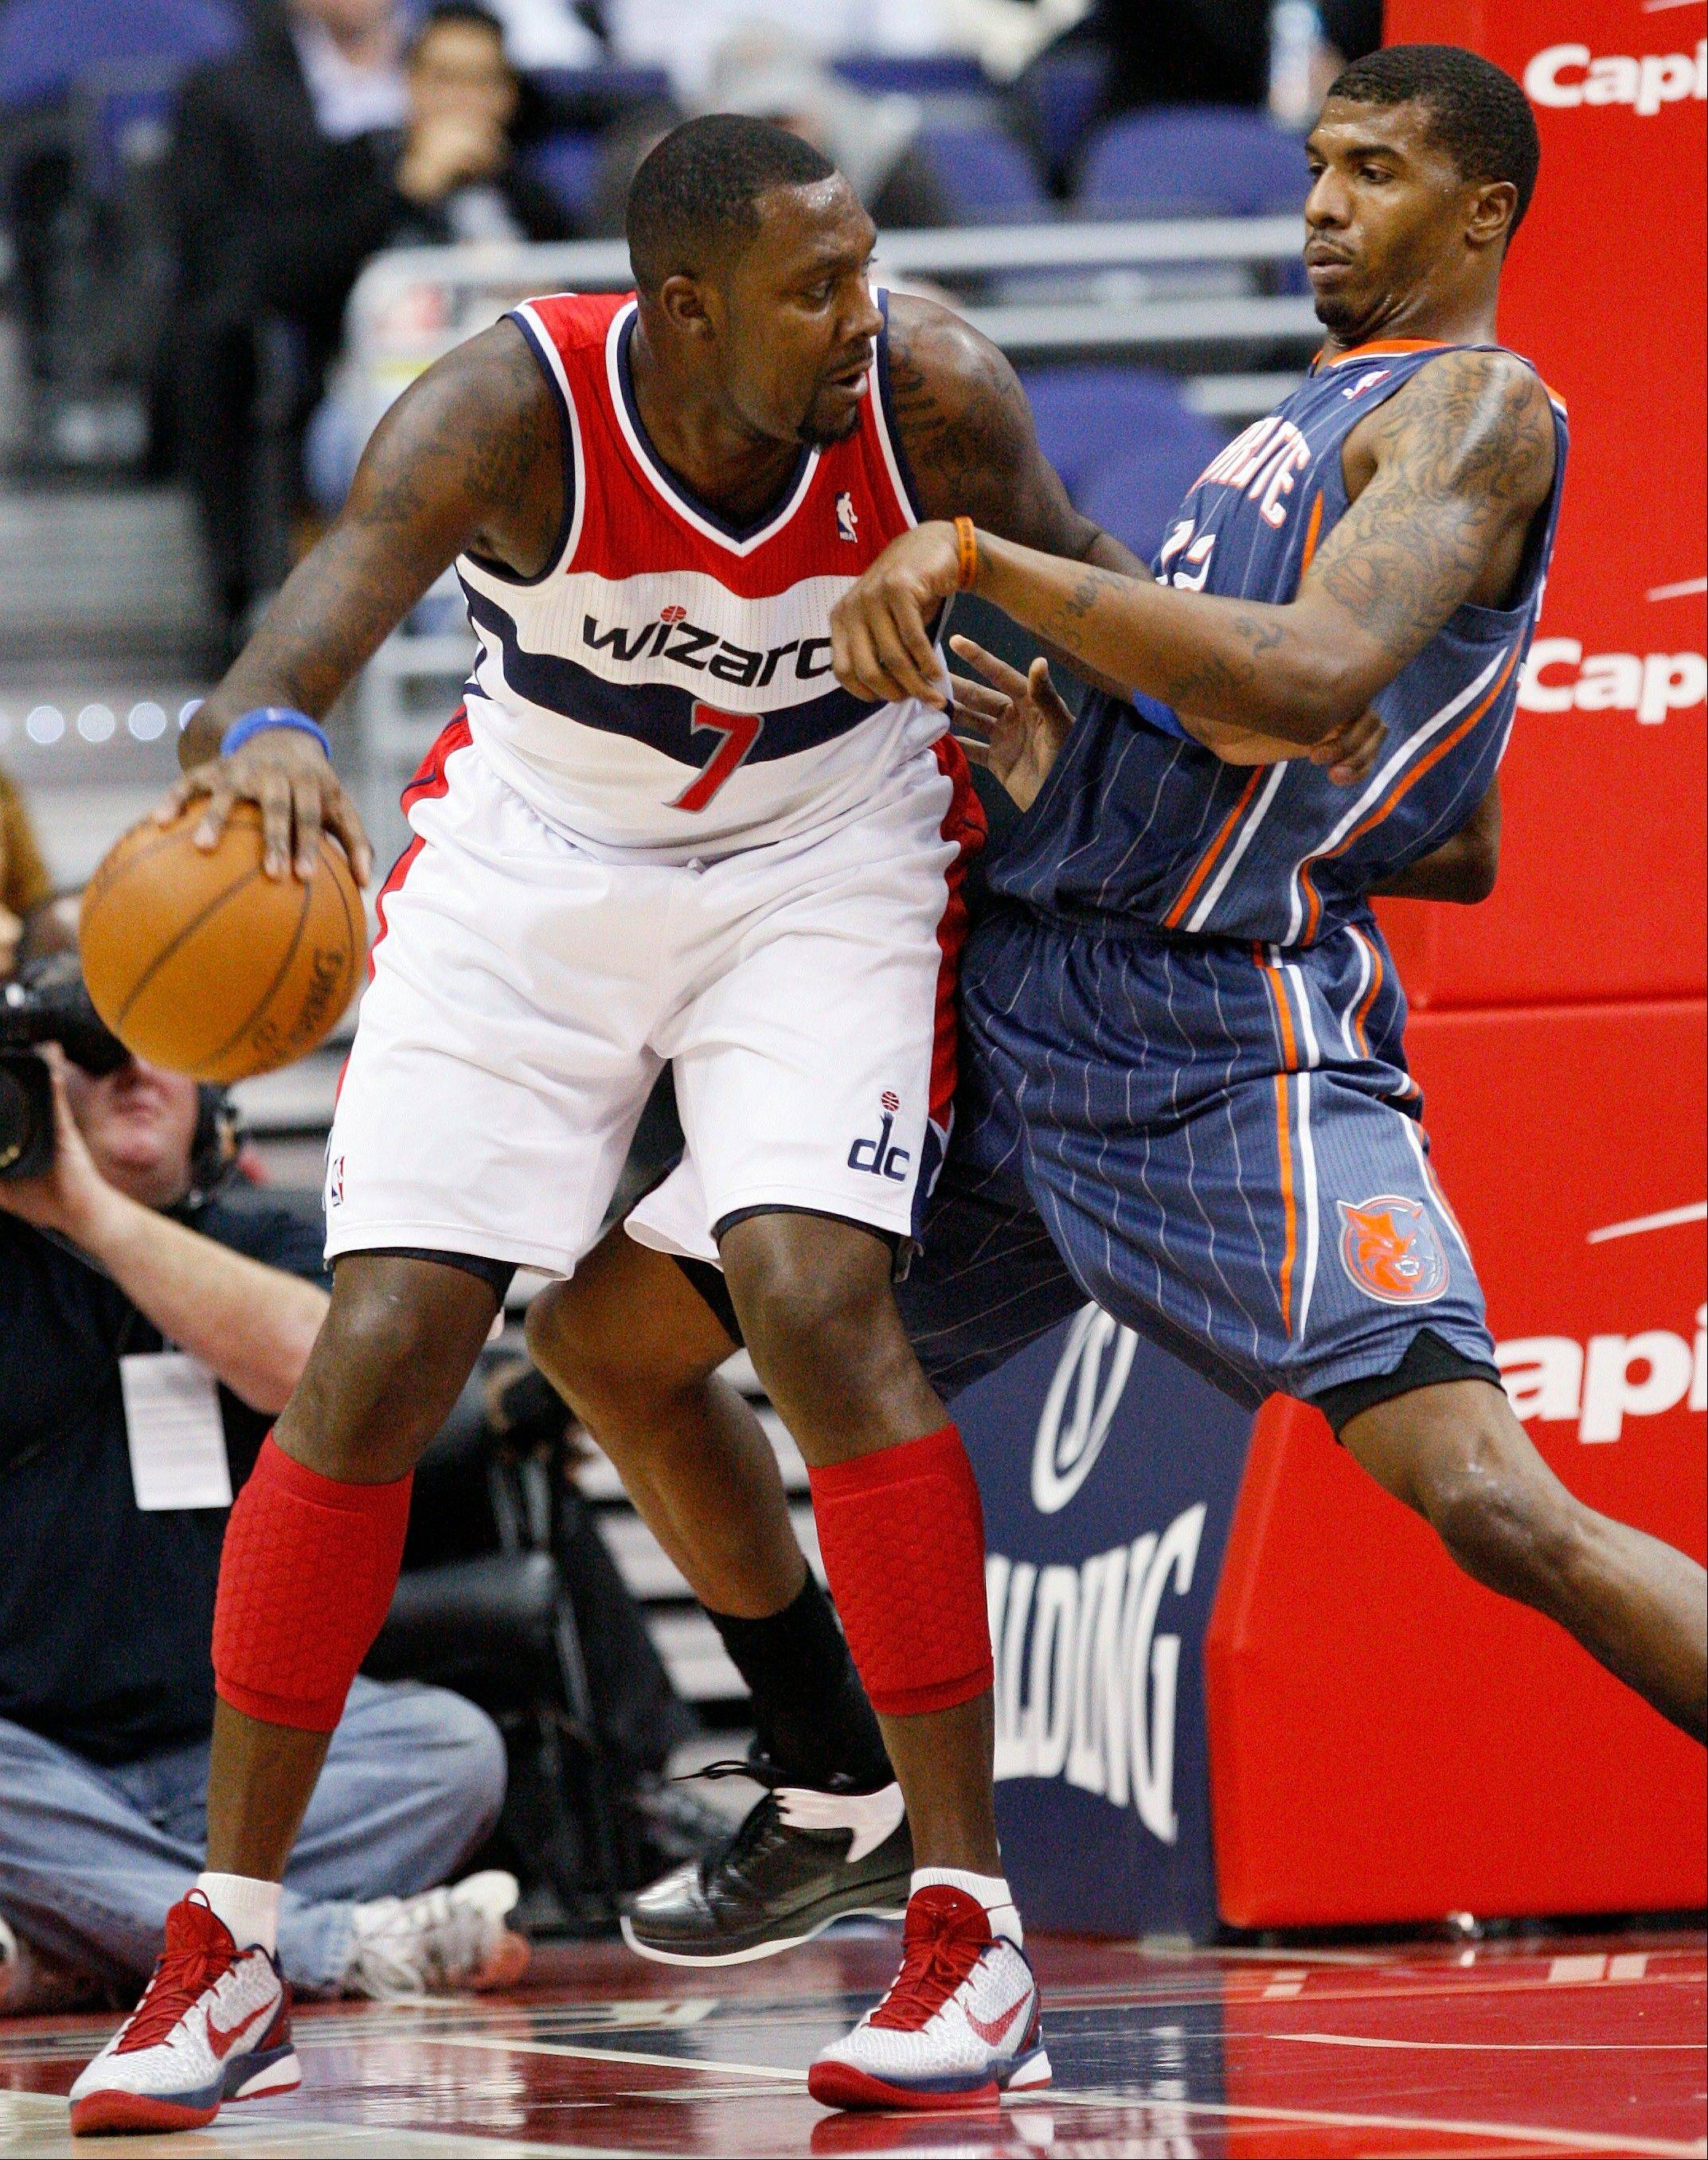 Washington Wizards forward Andray Blatche drives Wednesday against Charlotte Bobcats forward Tyrus Thomas during the first quarter.